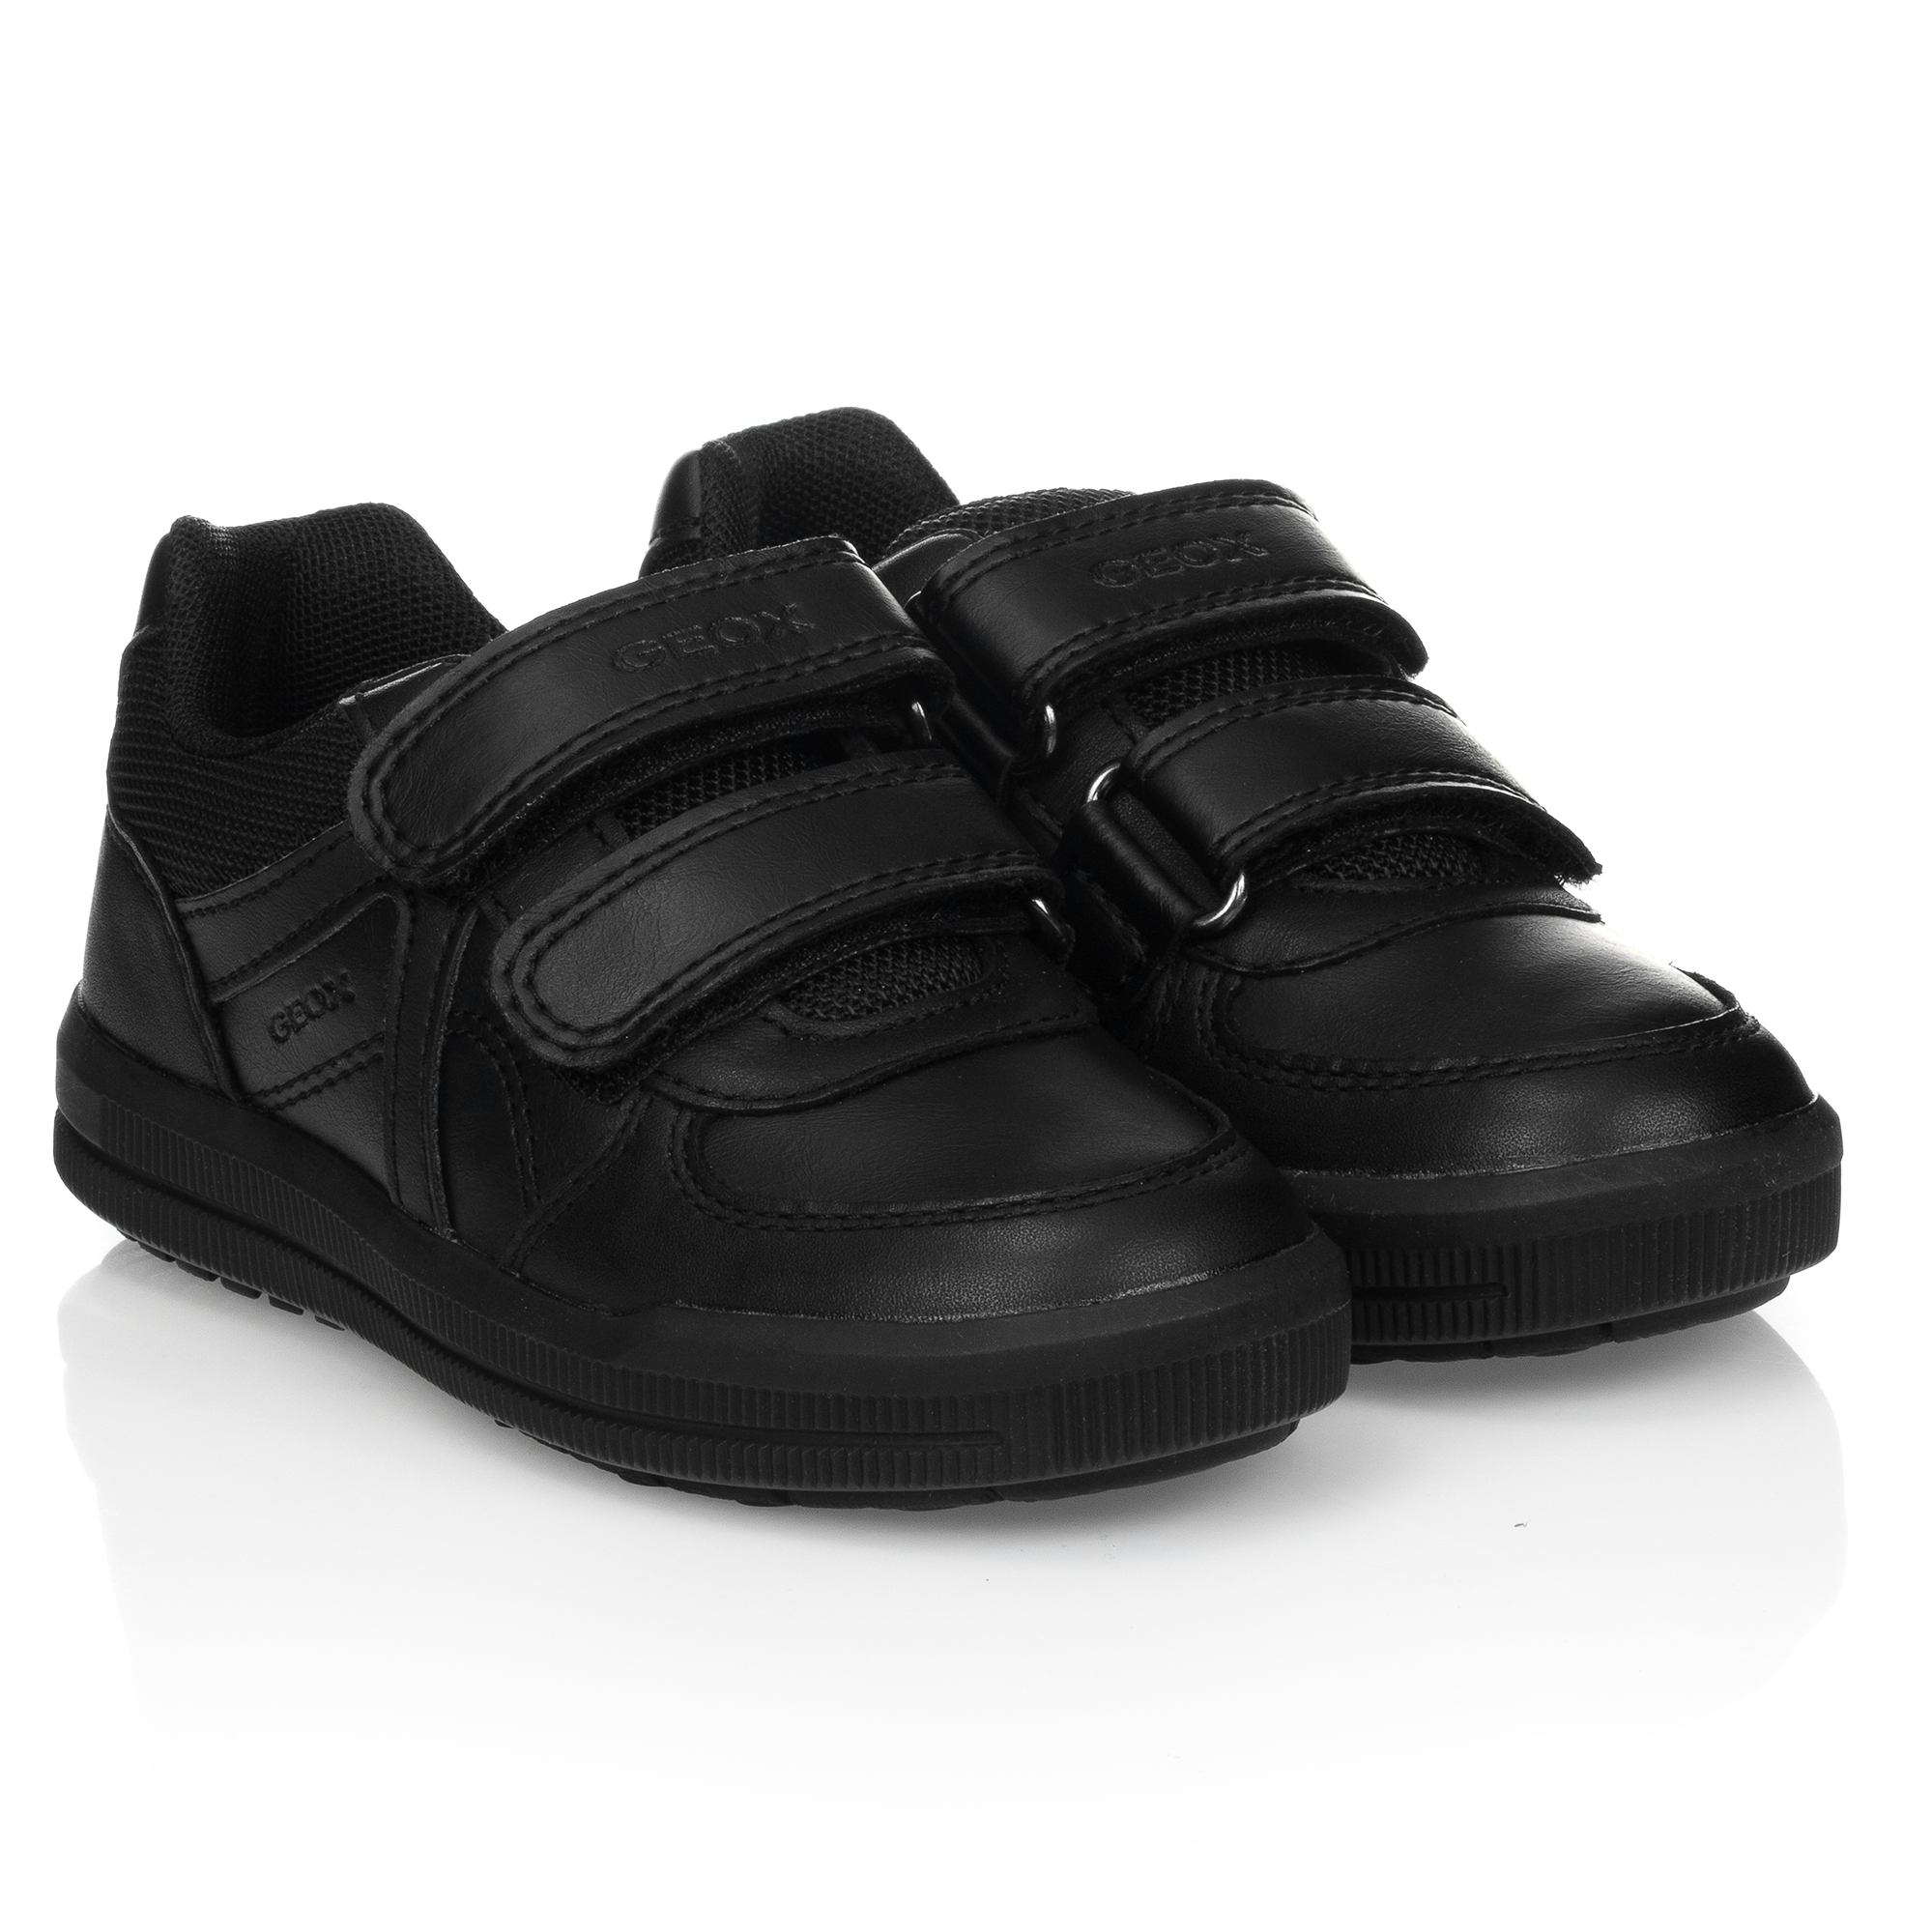 Geox - Boys Black Leather Trainers